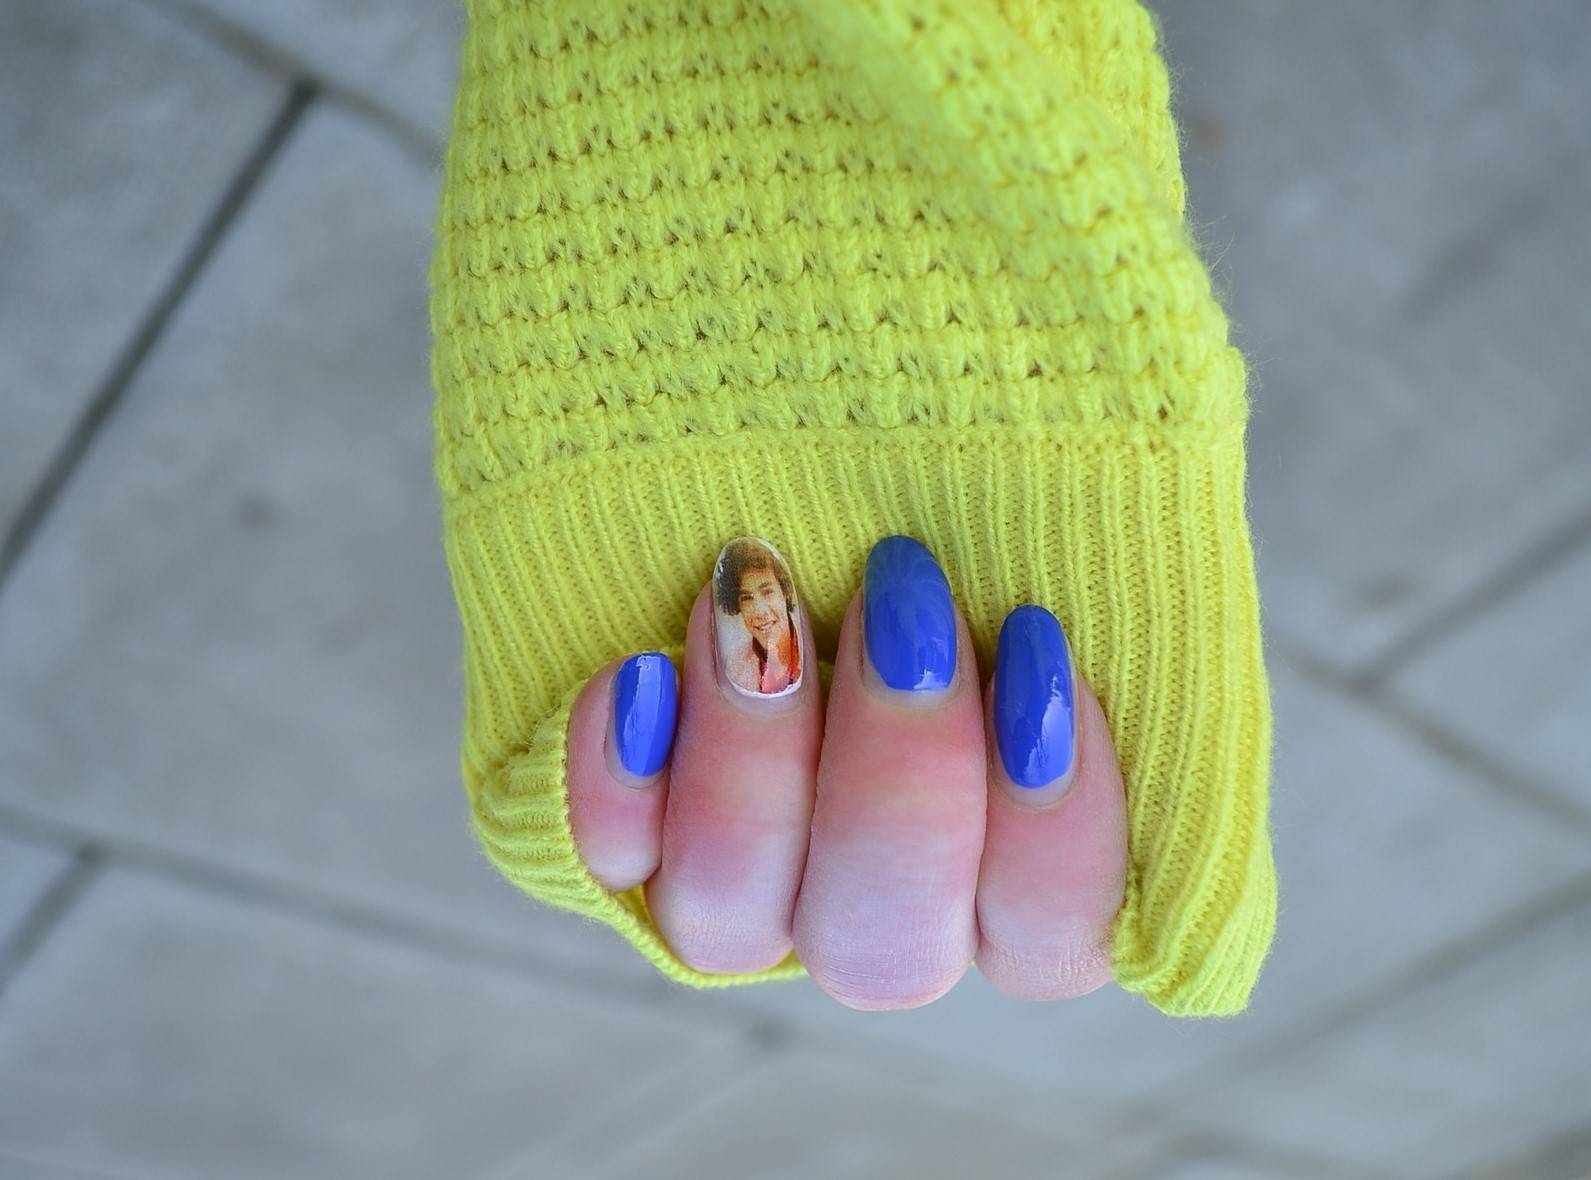 Causes of concave nails - What You Need to Know